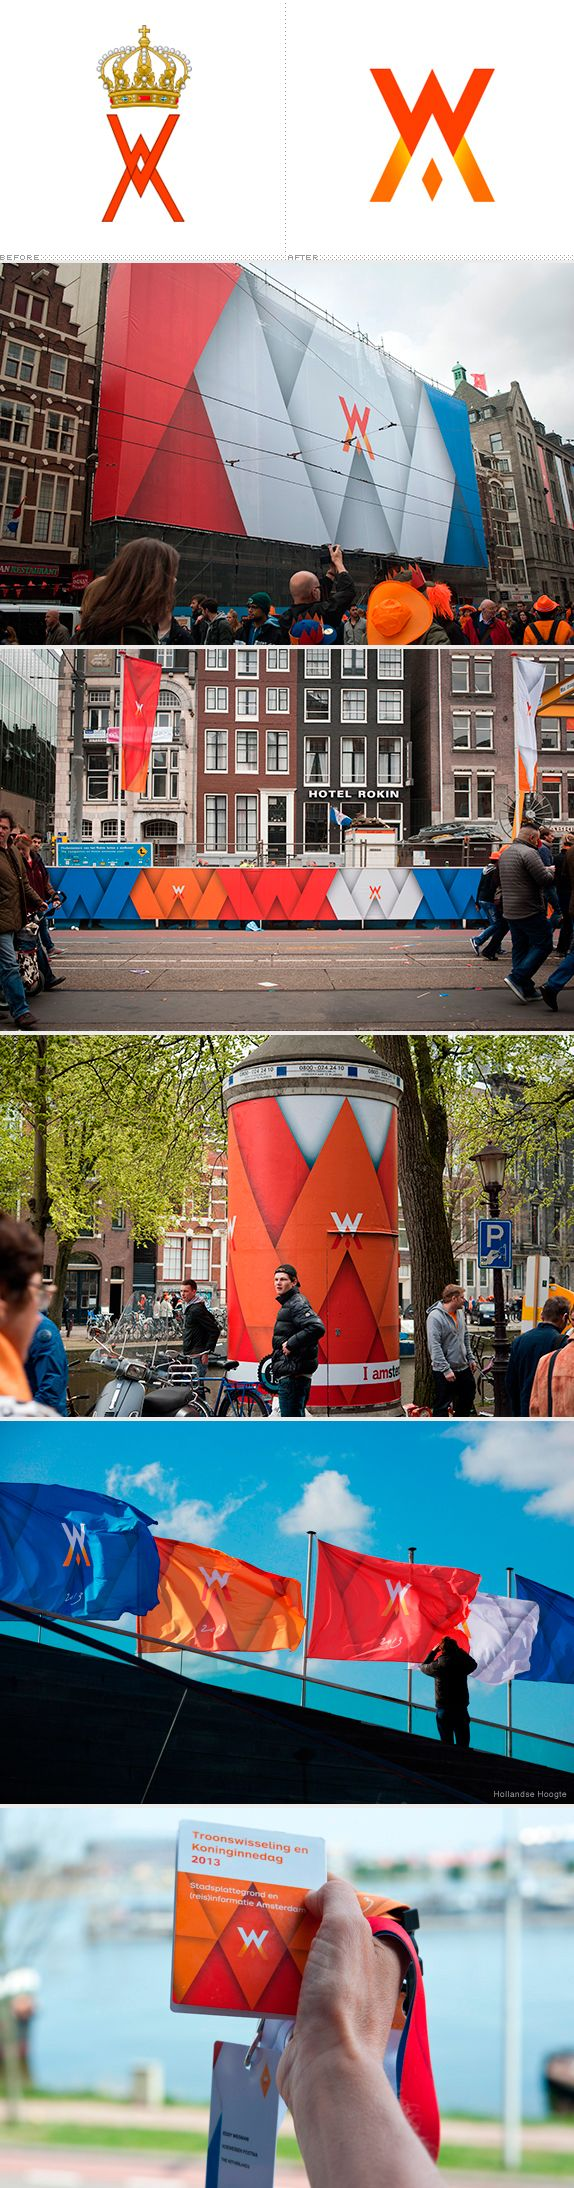 Branding for the inauguration of Willem-Alexander as King of The Netherlands, 30-04-'13. #greetingsfromnl